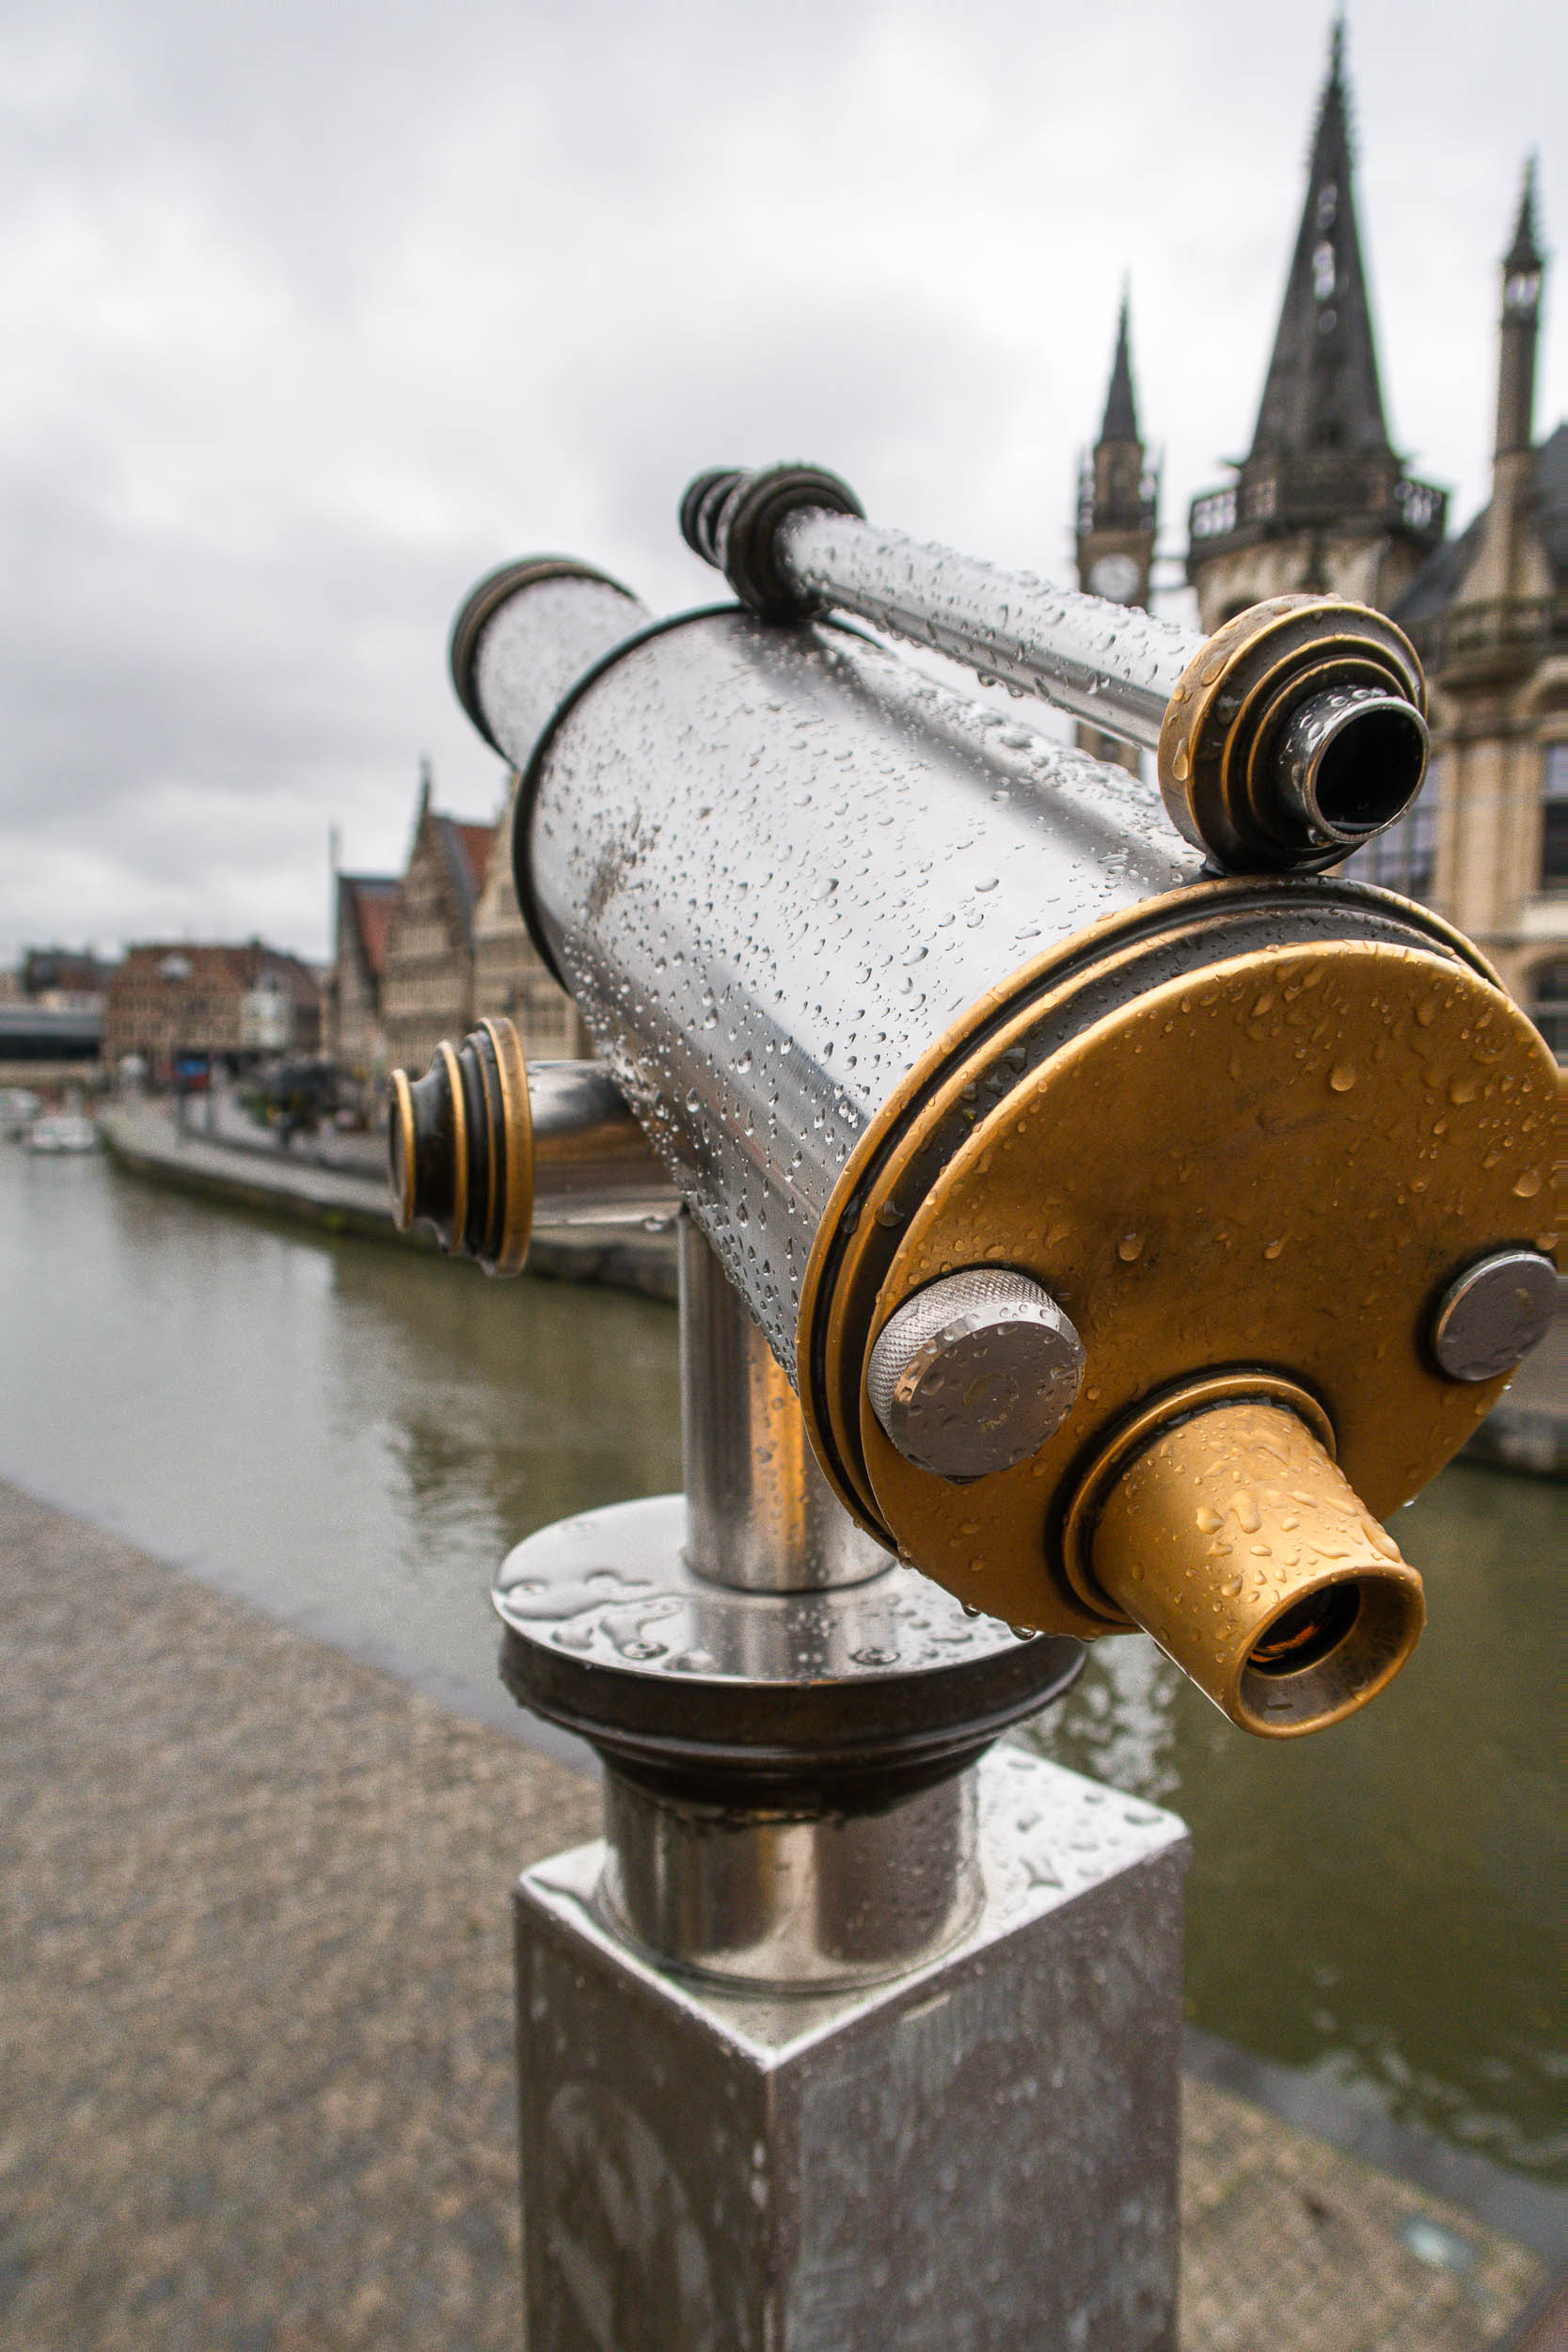 24 hours in Ghent, Belgium - Your Guide.